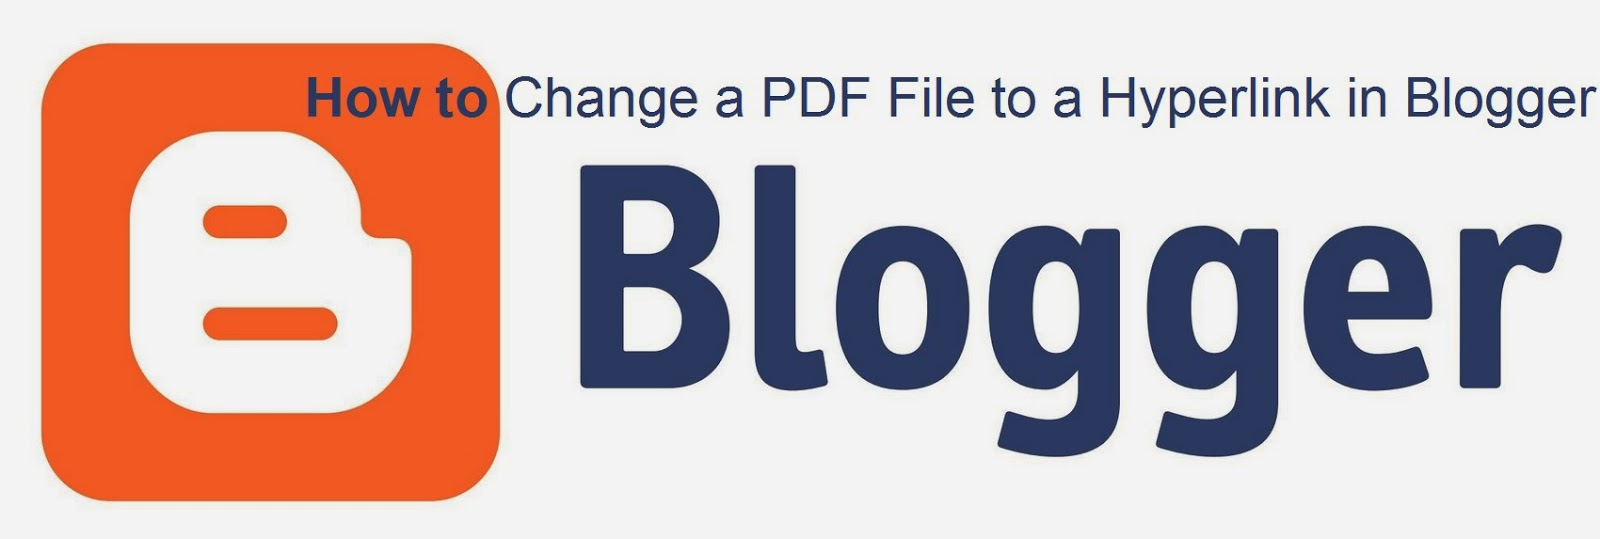 How to Change a PDF File to a Hyperlink in Blogger : eAskme